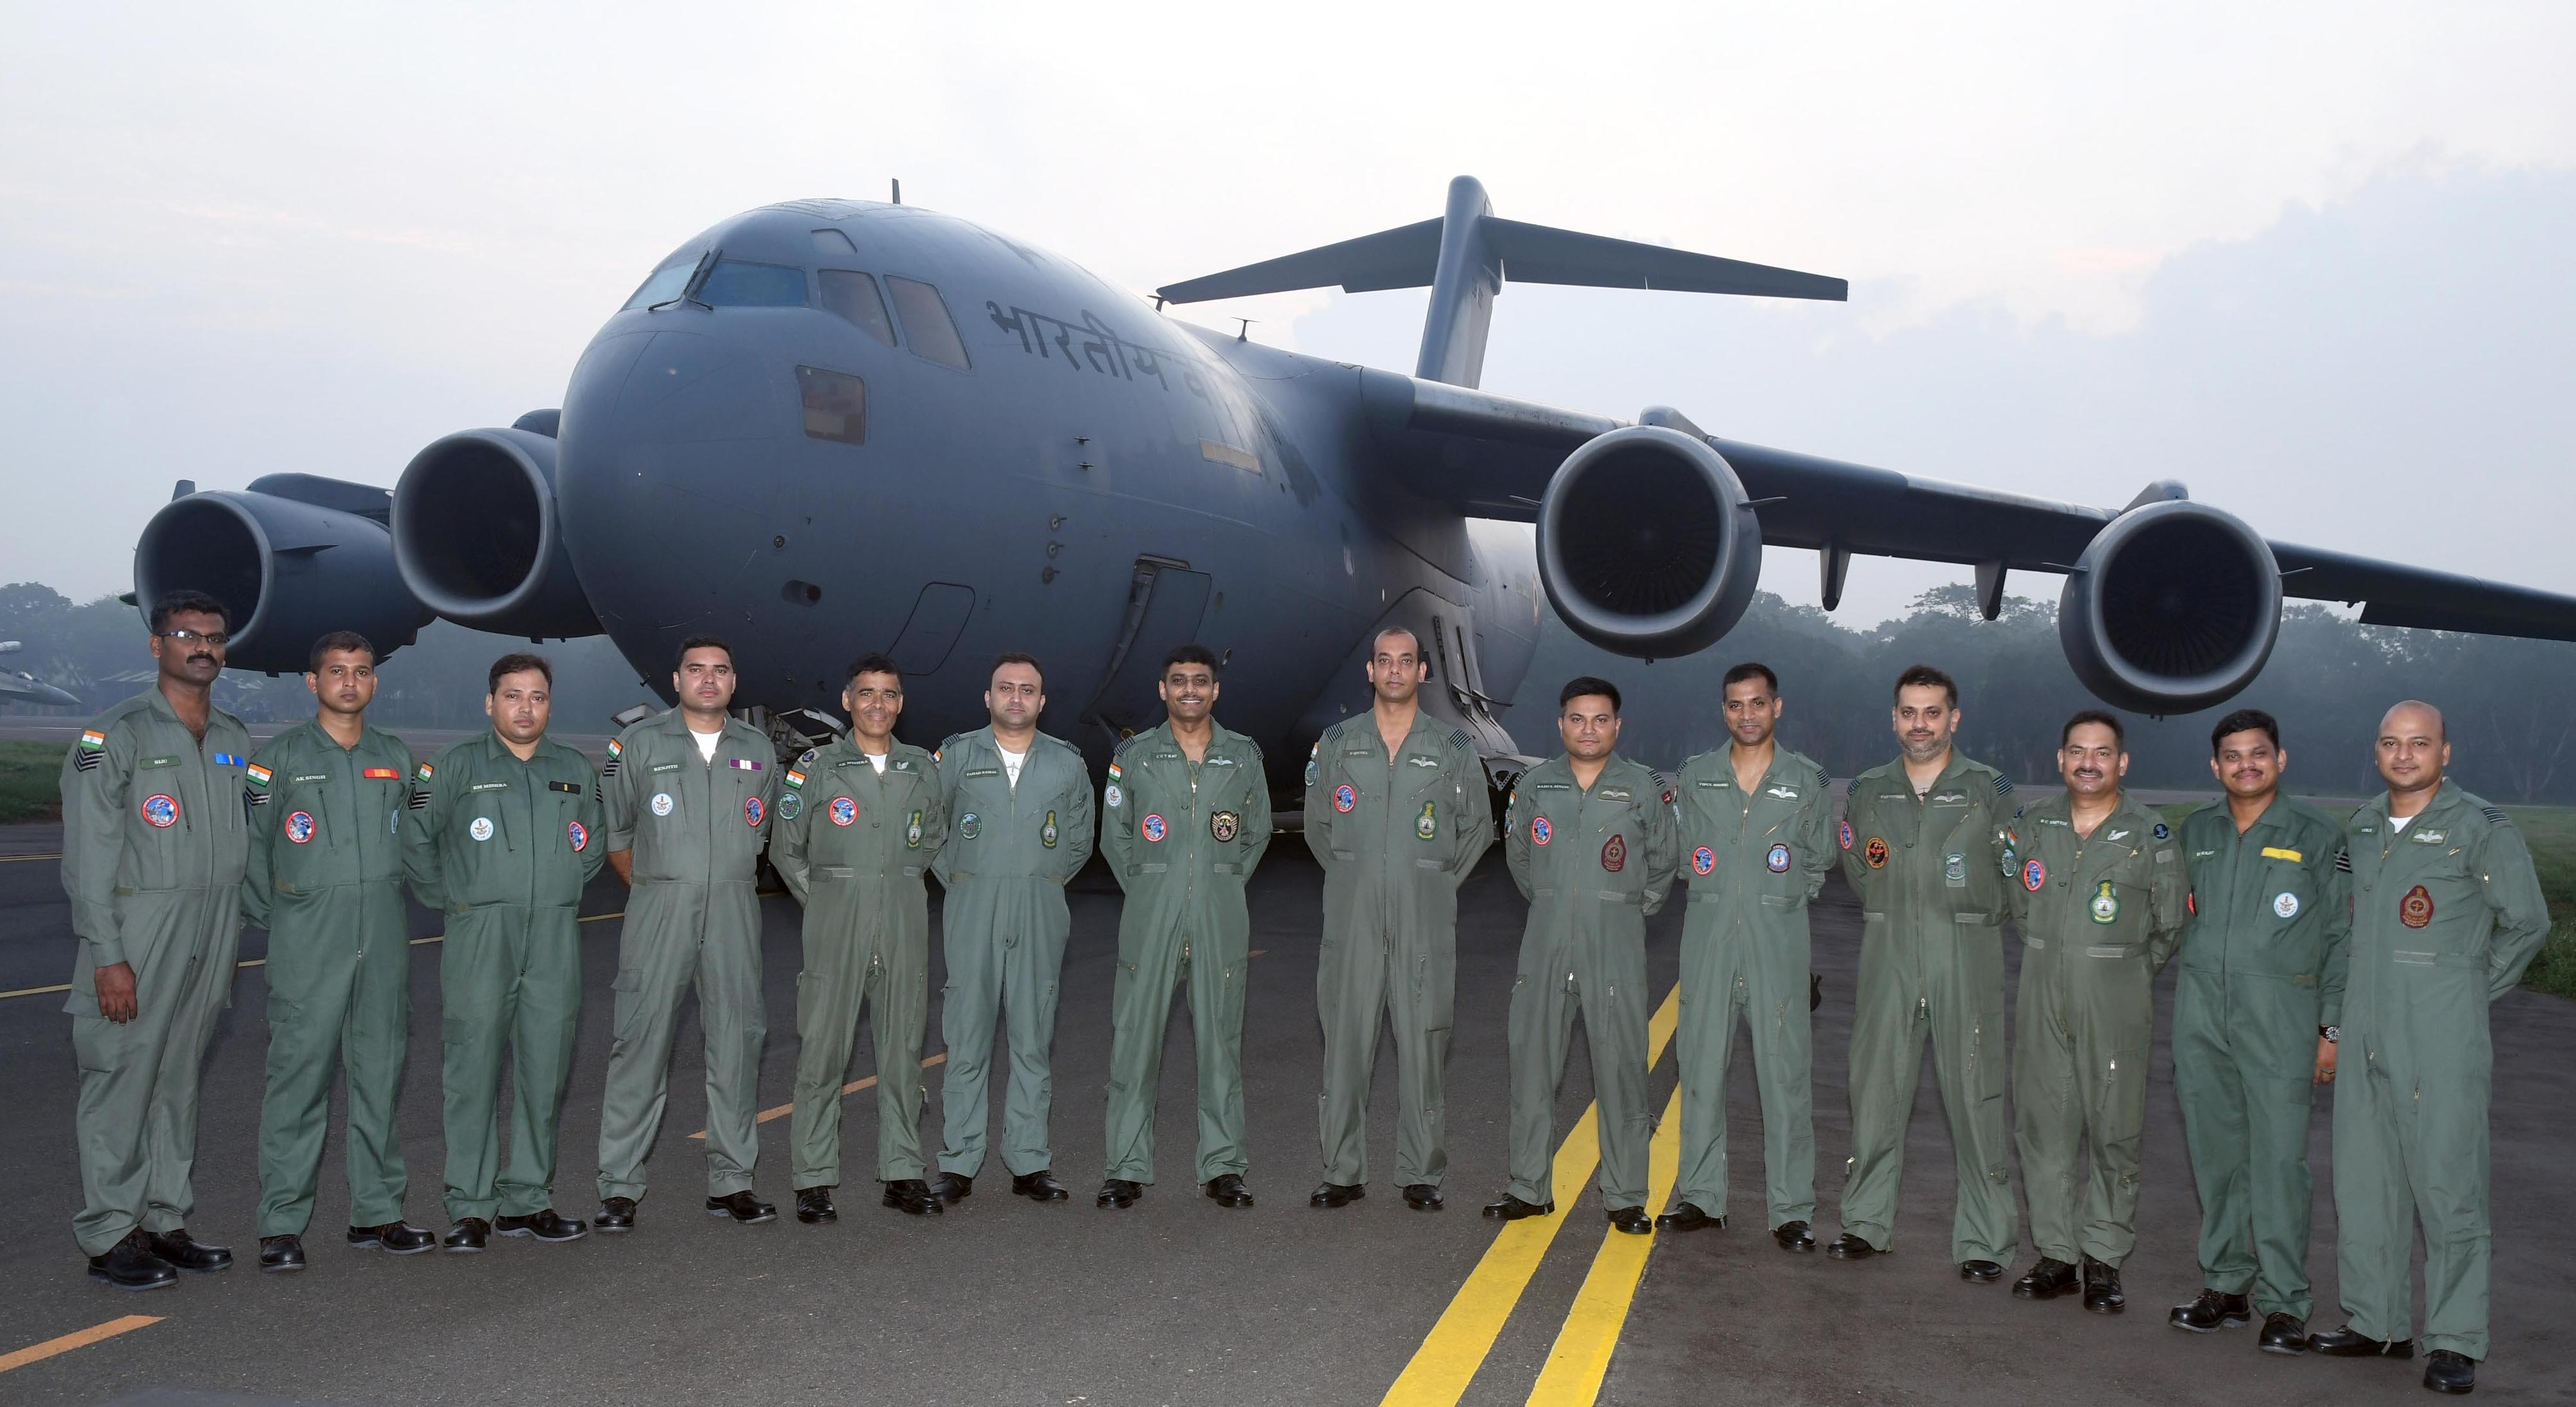 IAF C-17 Aircraft During 'Pitch Black-2018'